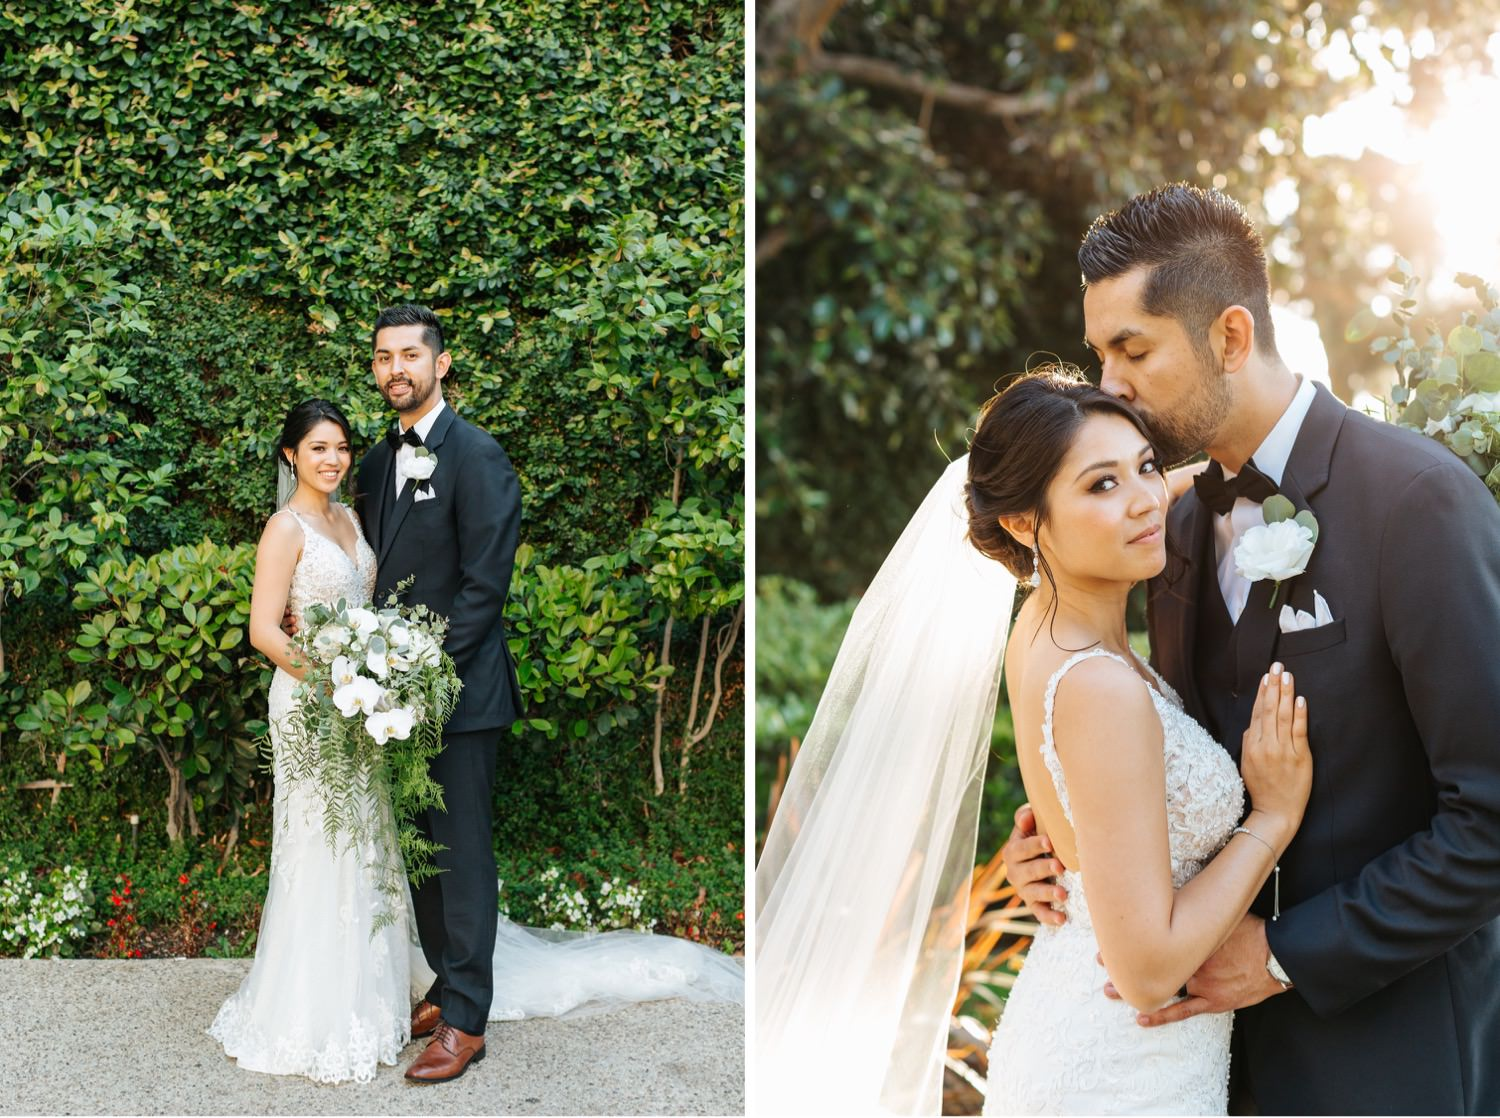 Romantic Los Angeles Wedding Photography - https://brittneyhannonphotography.com